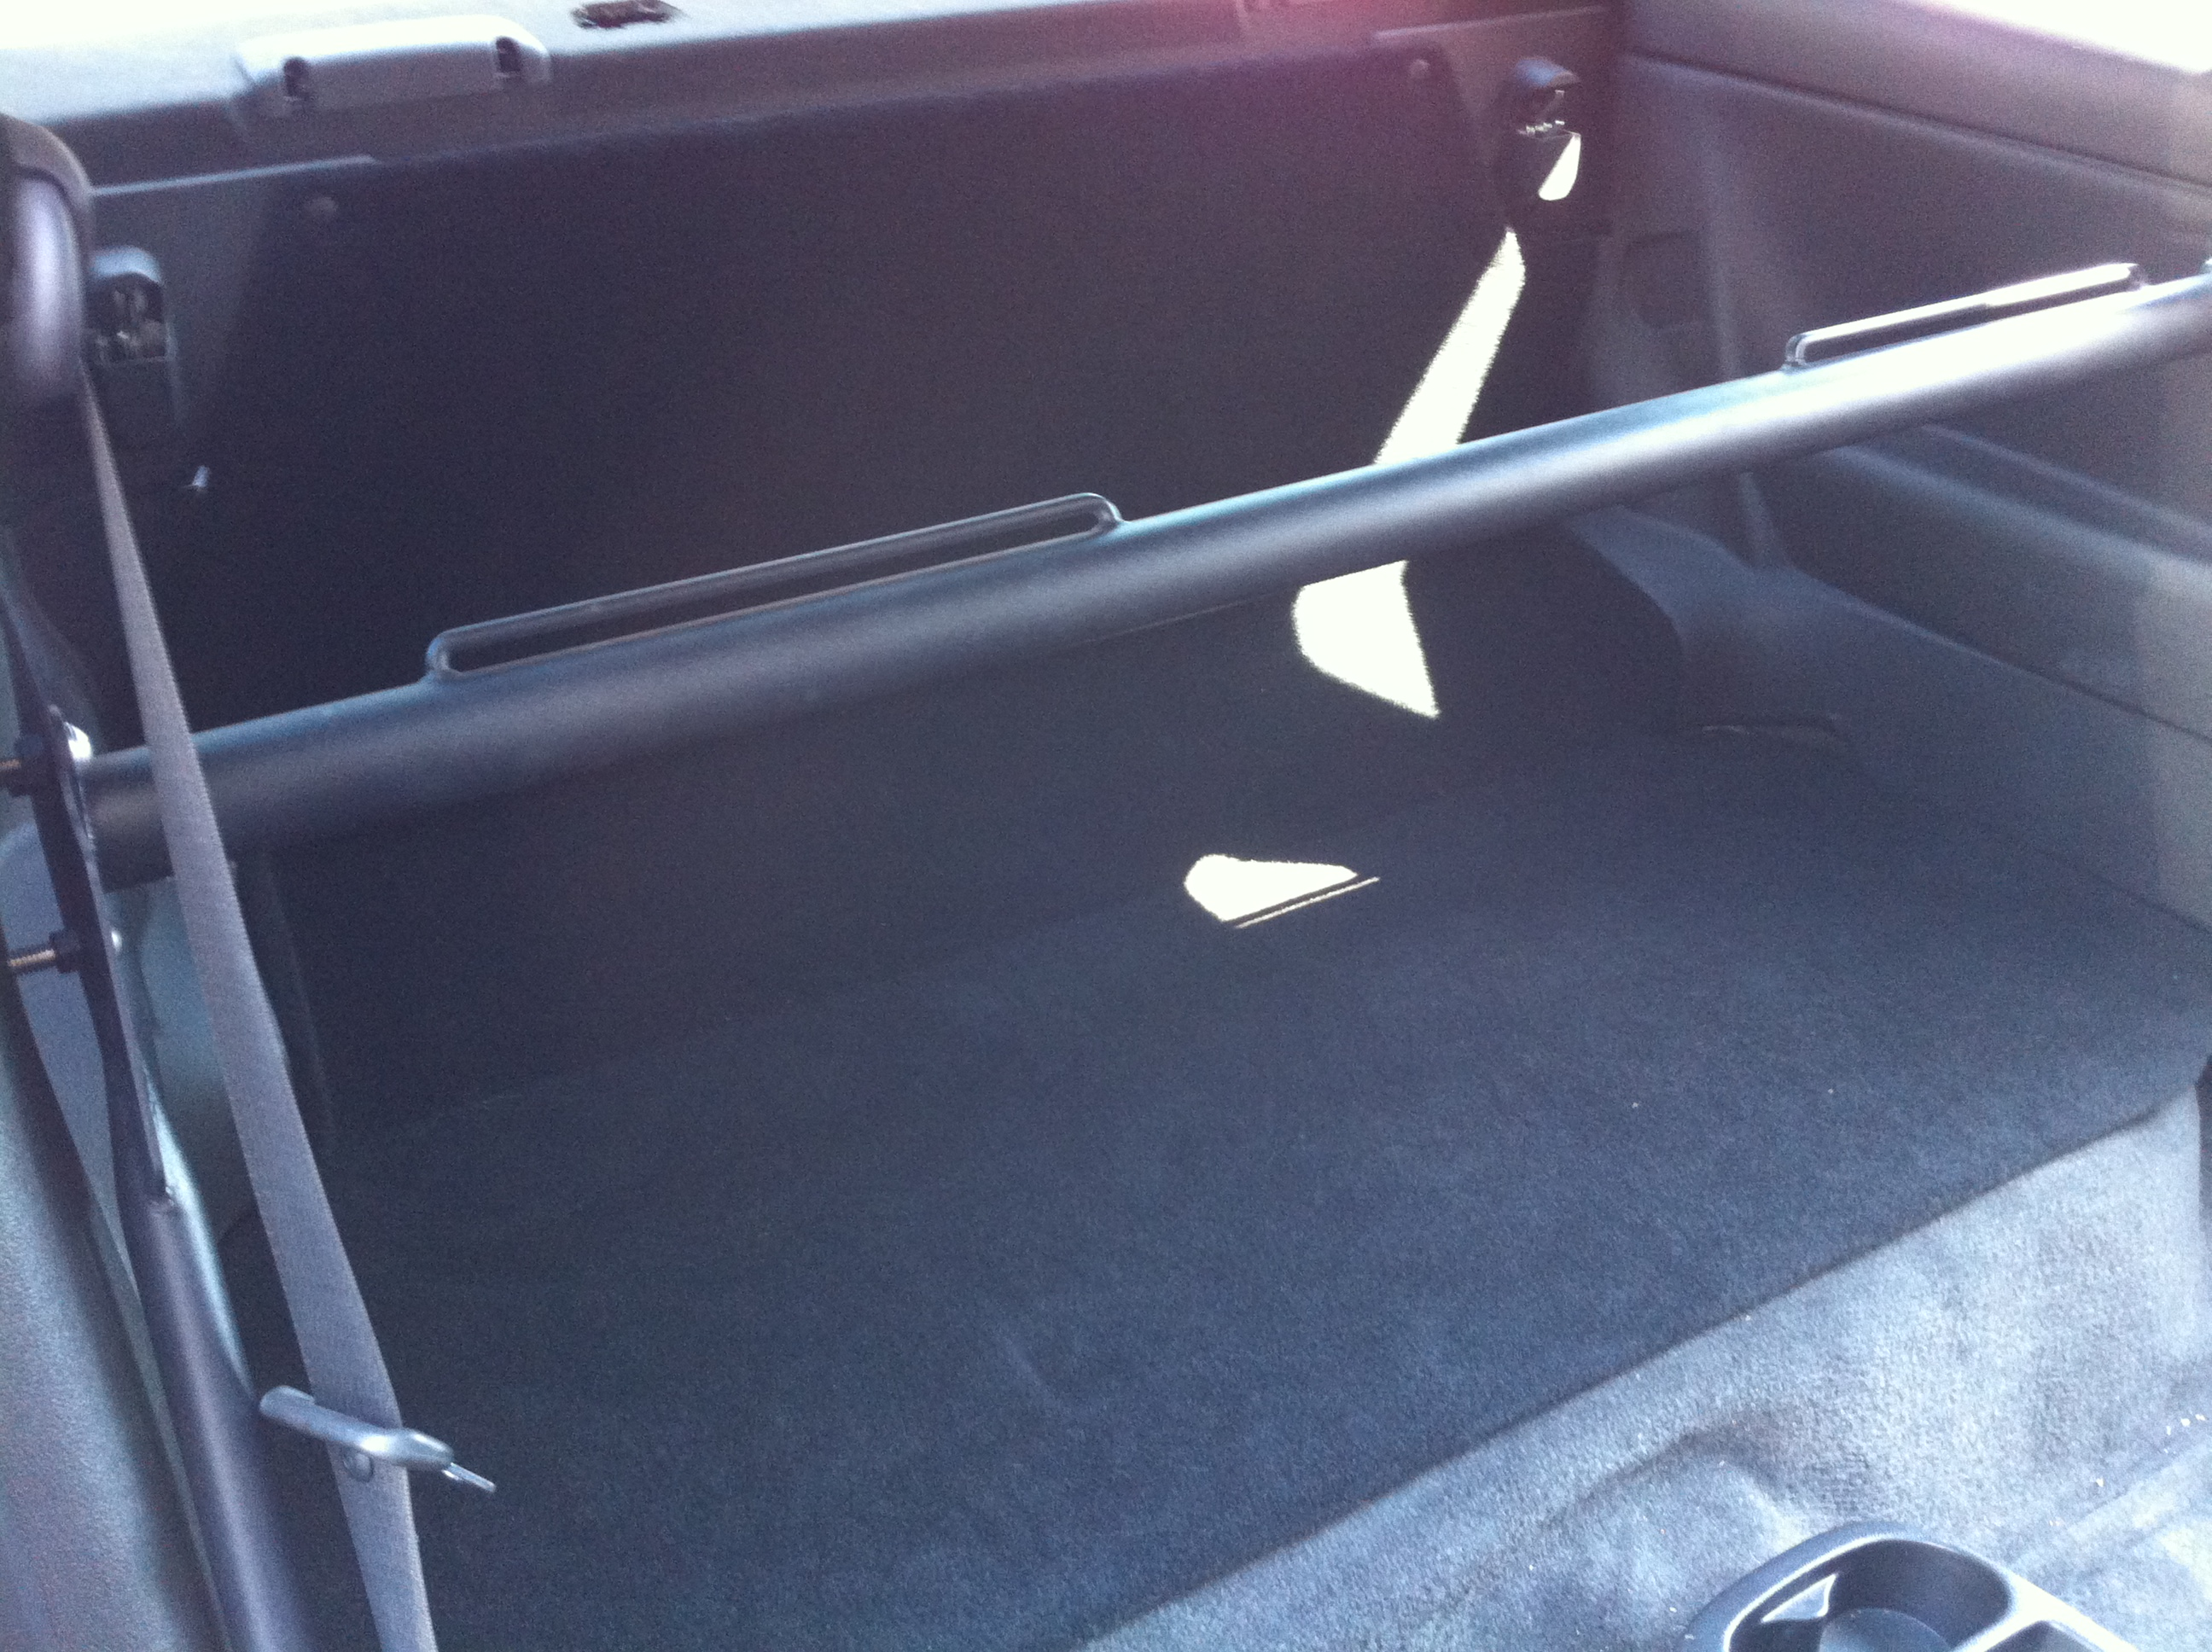 Chevy cobalt rear seat removal